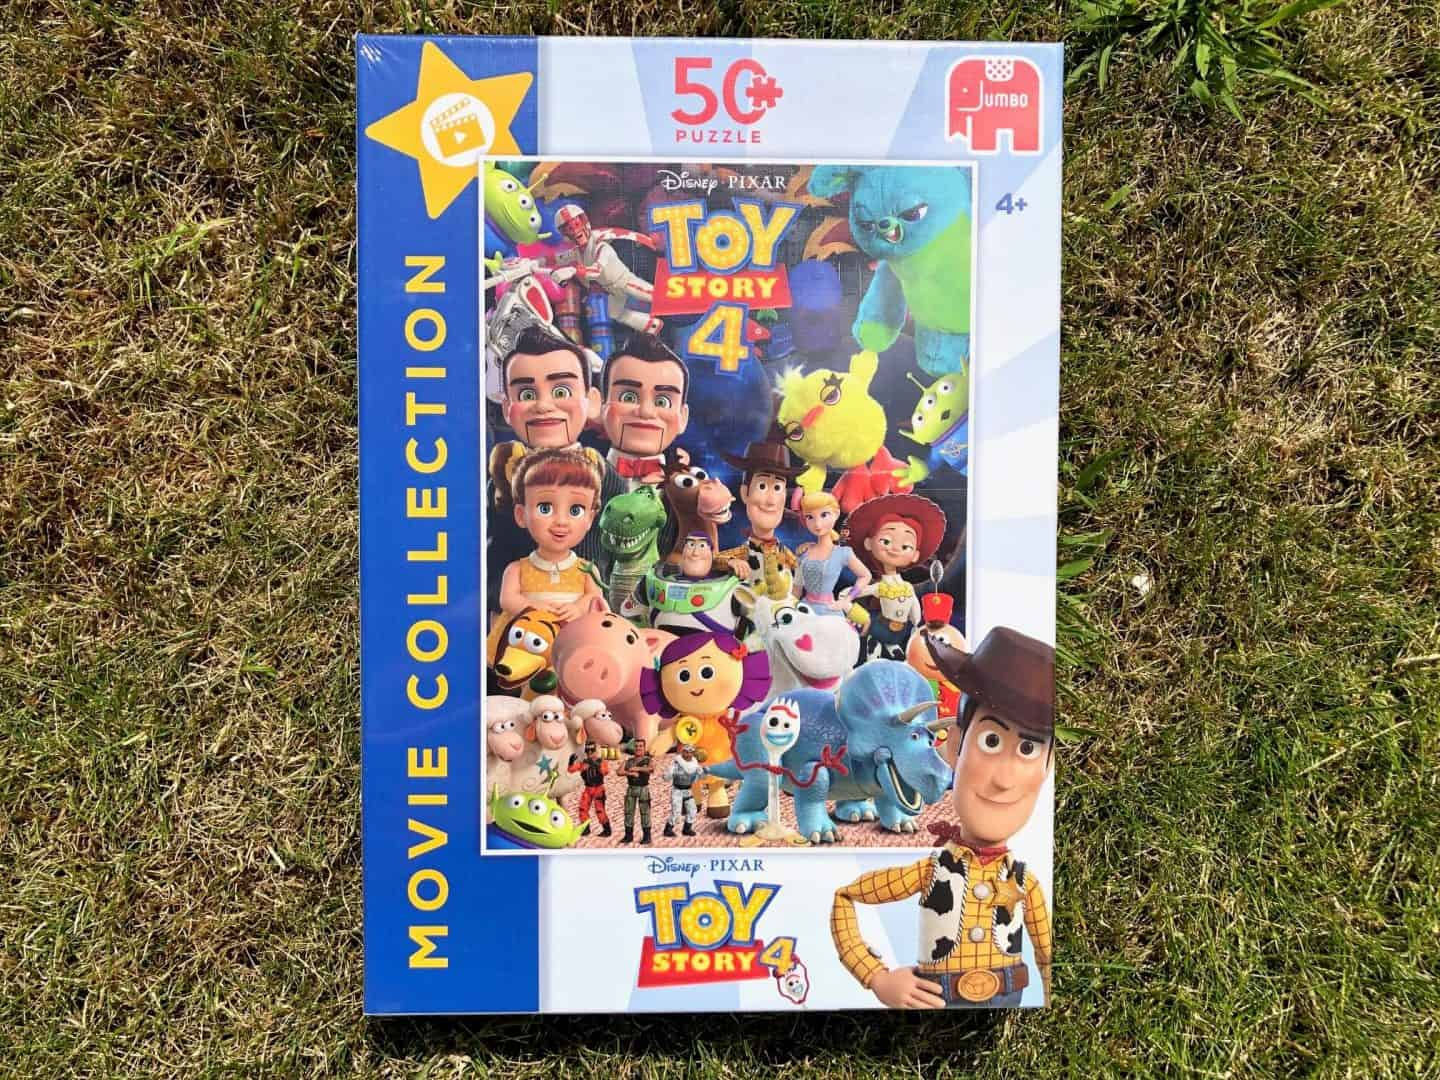 Toy Story 4 jigsaw puzzles from Jumbo. -movie collection